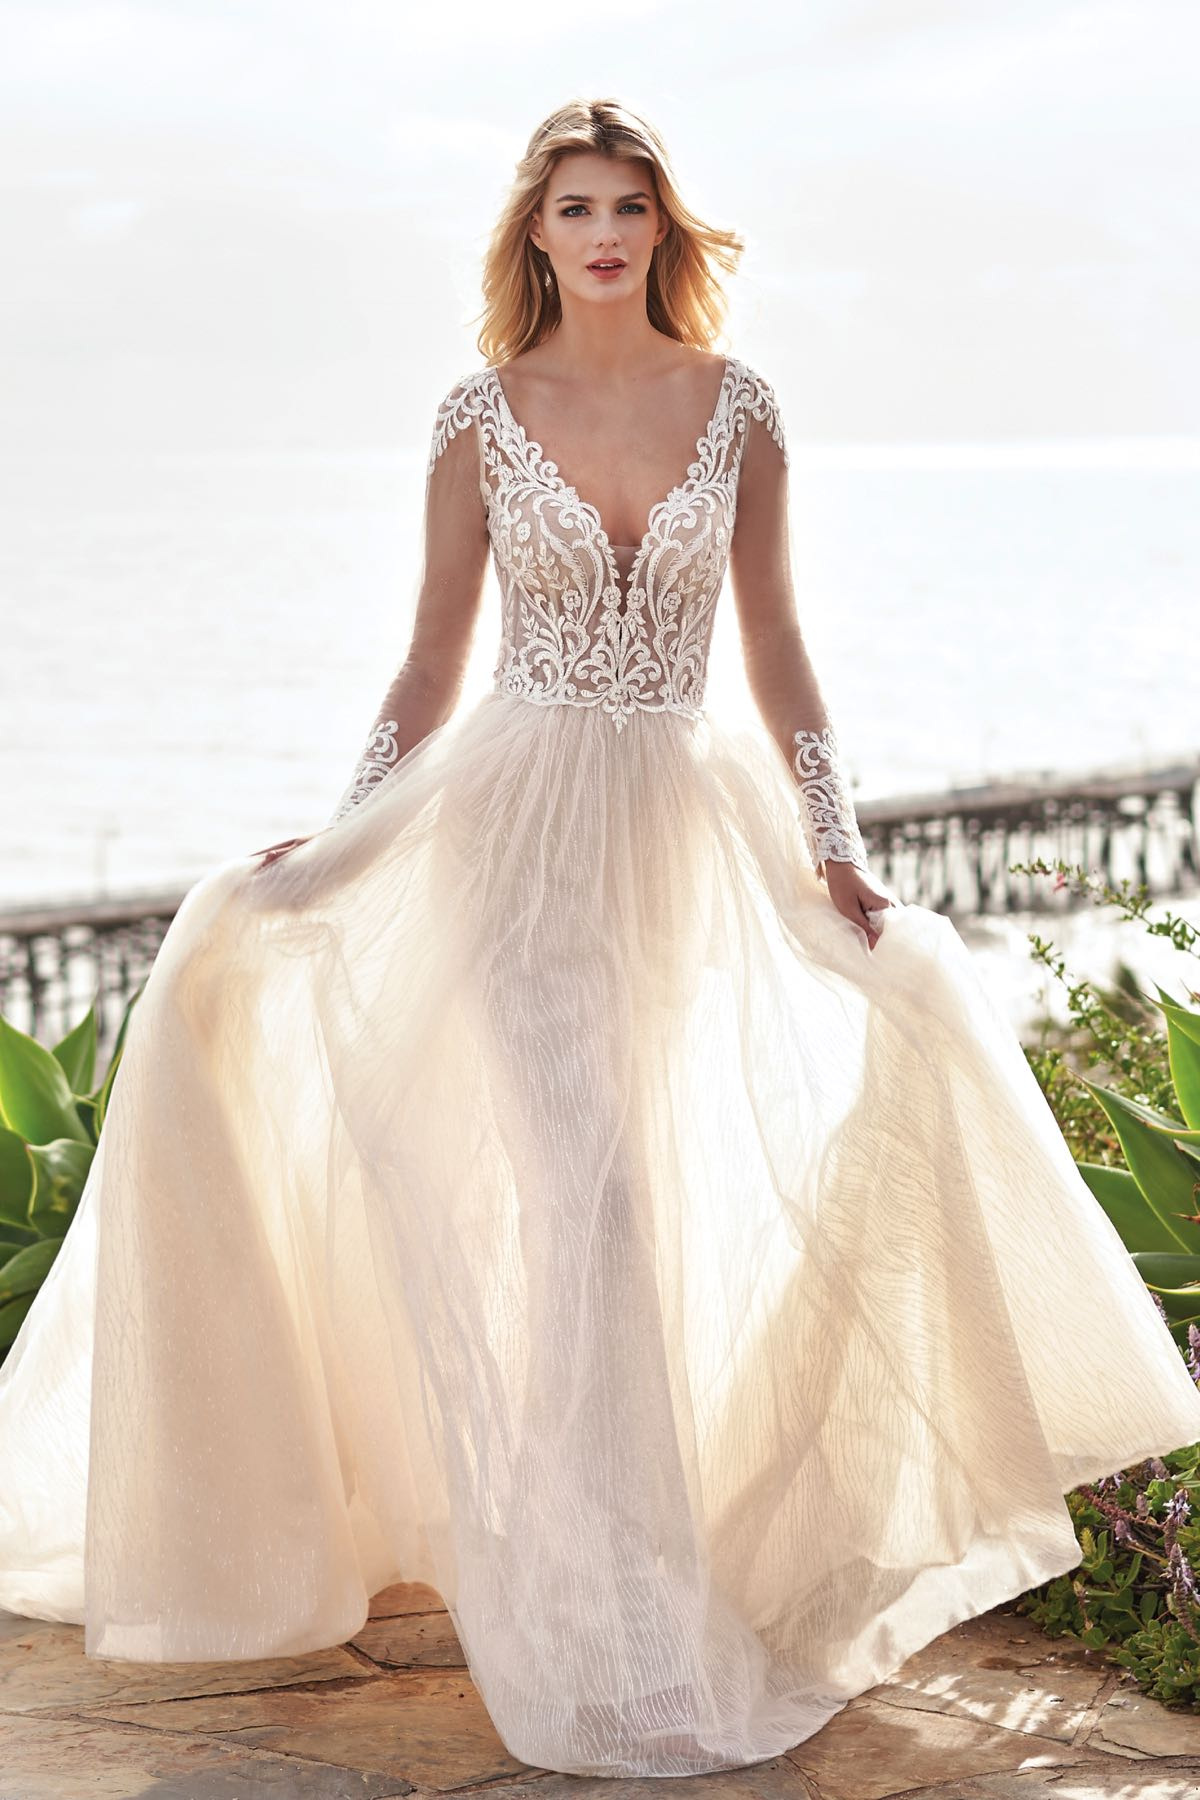 V-neck Line with Embroidery White Lace Maxi Dress